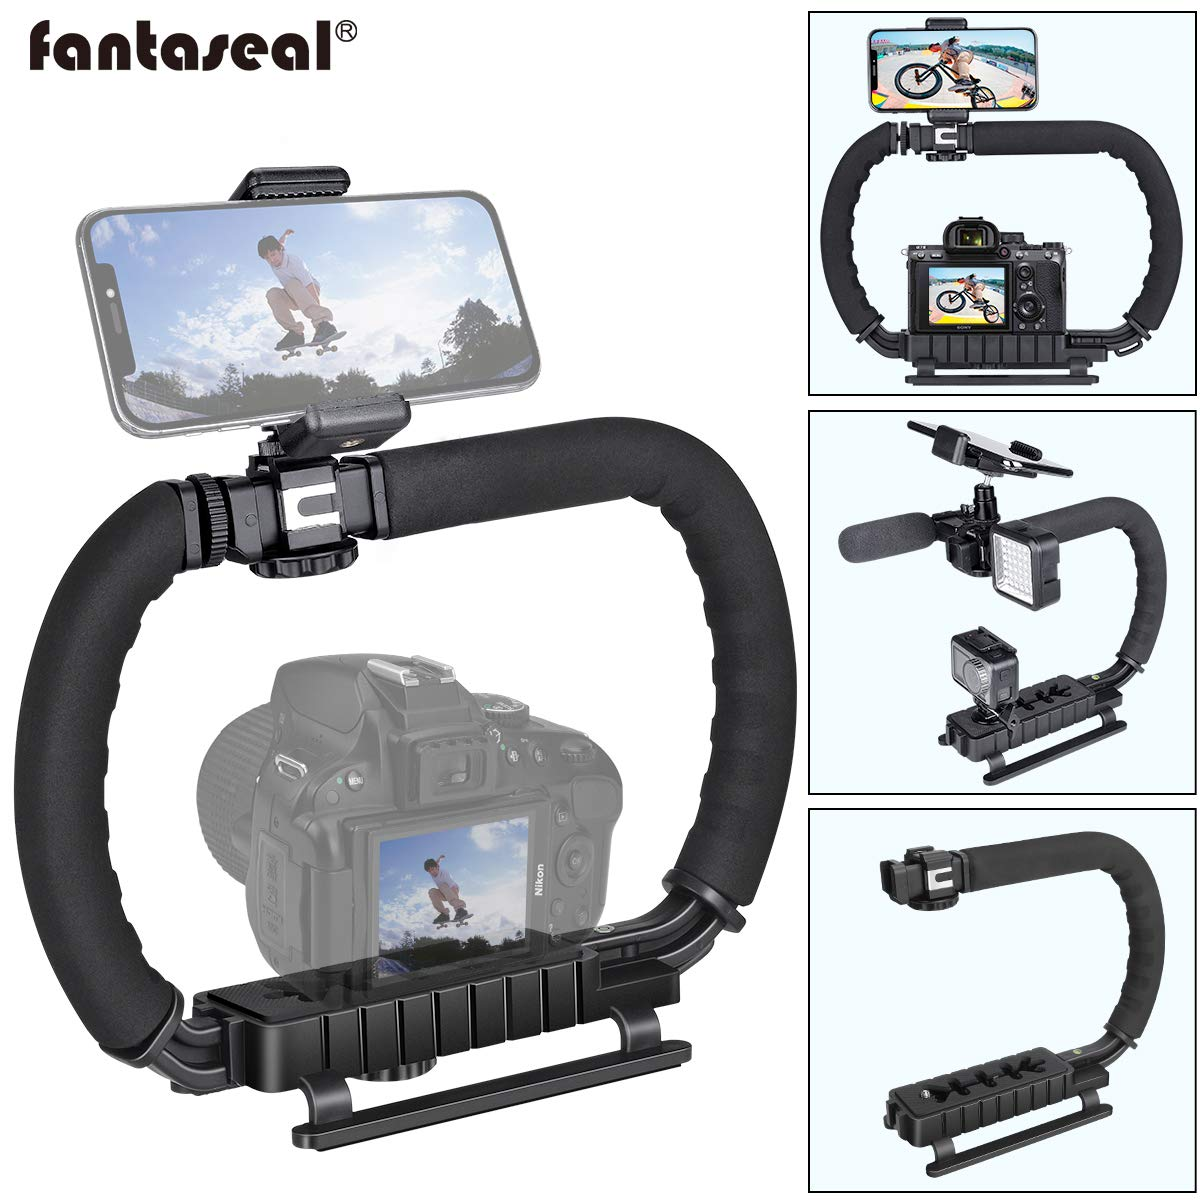 DSLR/Mirrorless/Action Camera Camcorder Phone Stabilizer 3-Shoe 2-Handed Vlog Video Holder Rig Low Position Shooting Steadycam Mount Detachable Grip Fit for GoPro Sony Canon Nikon DV iPhone Samsung by fantaseal